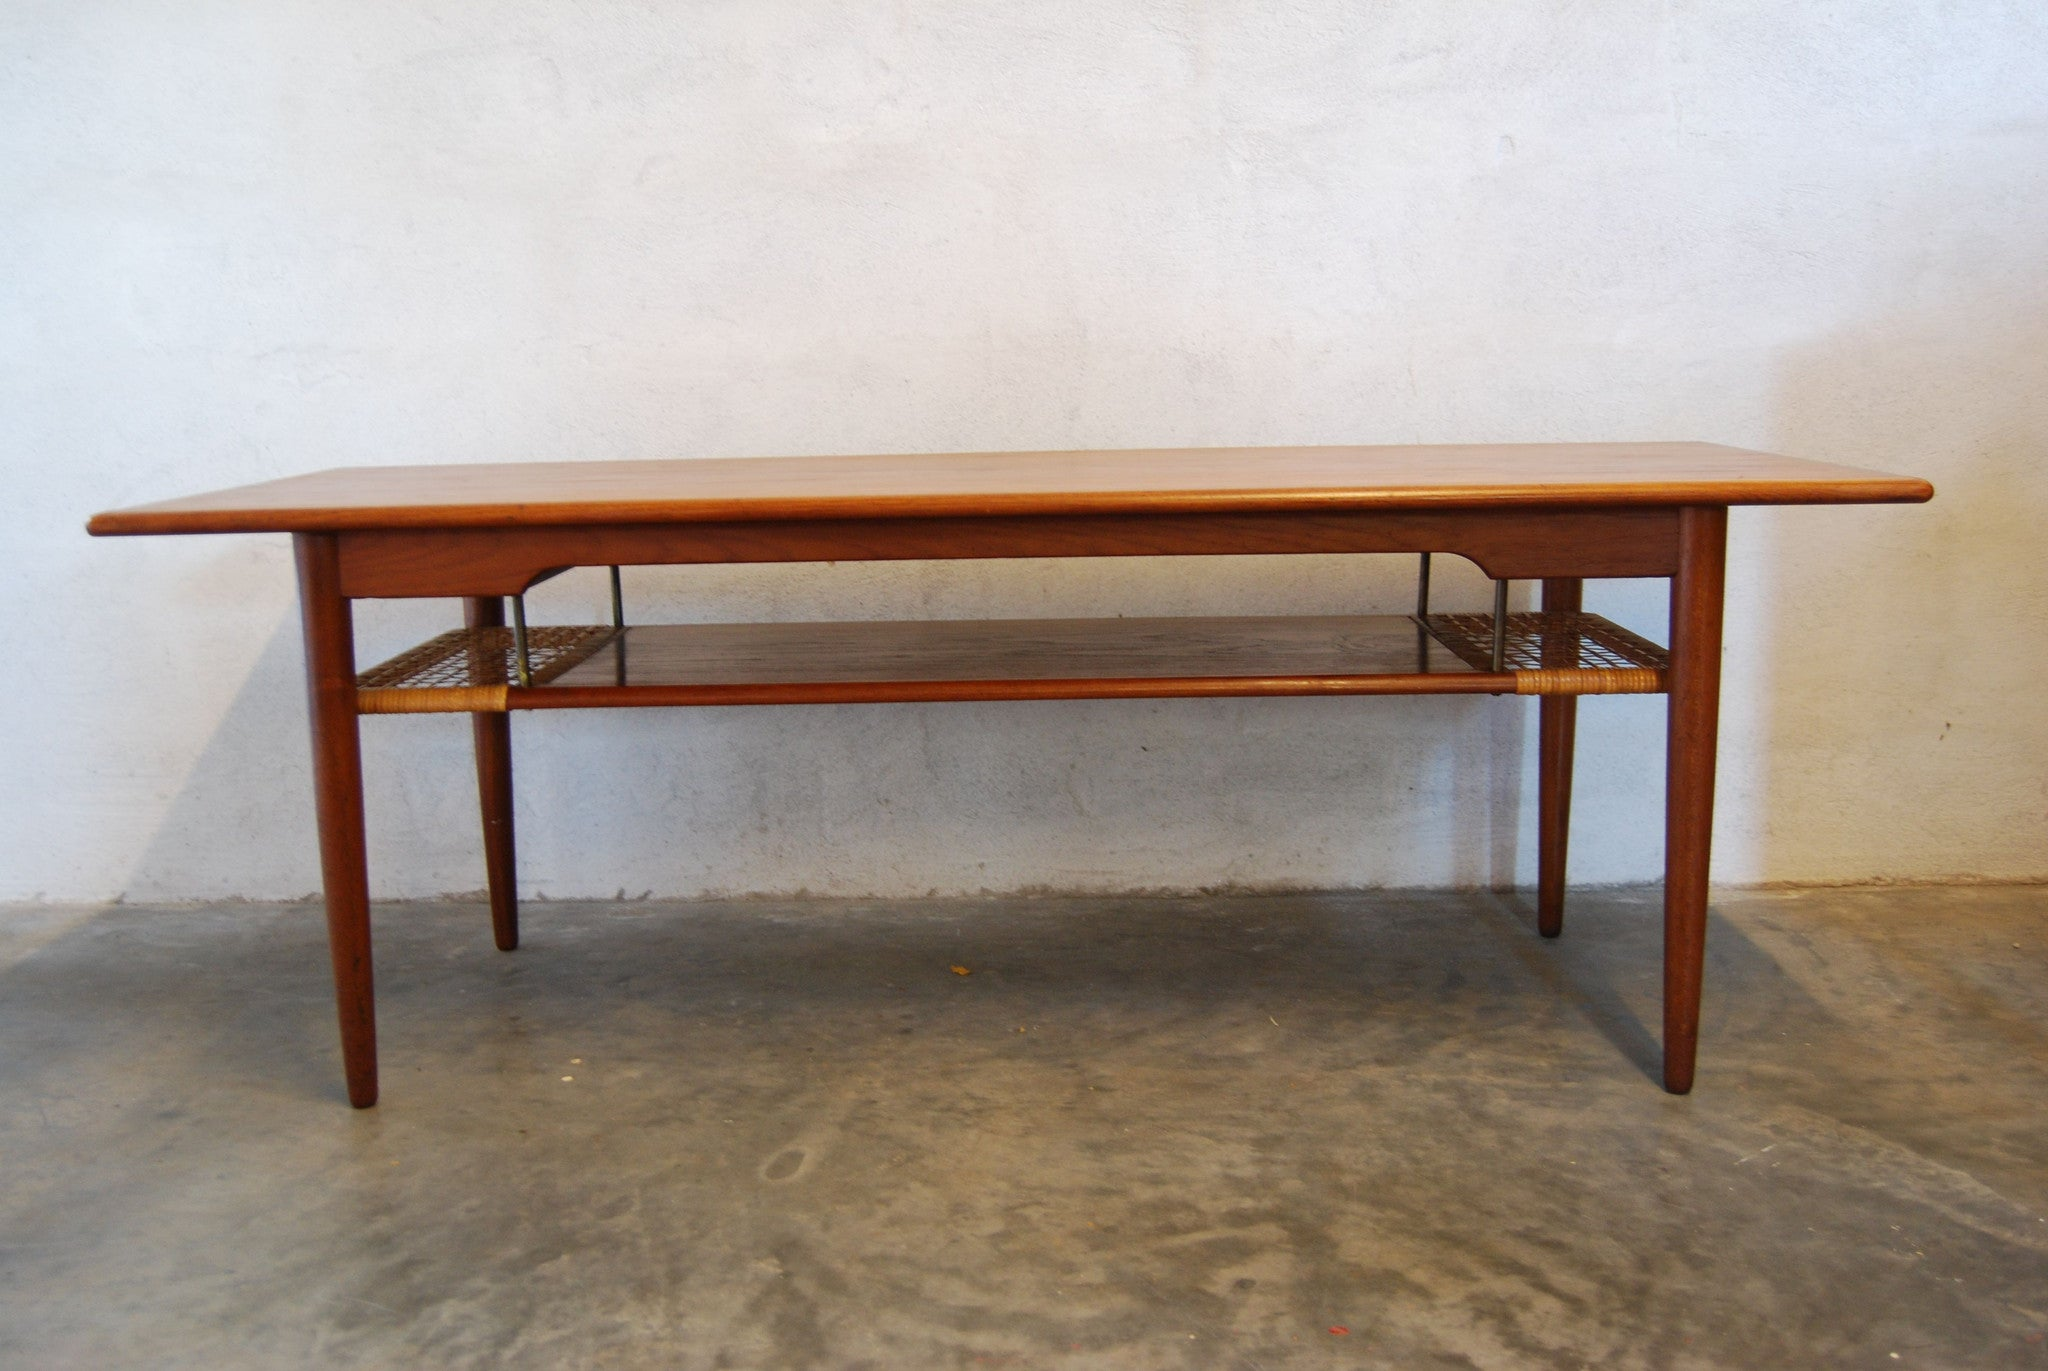 Chase & Sorensen Two-tiered Coffee Table